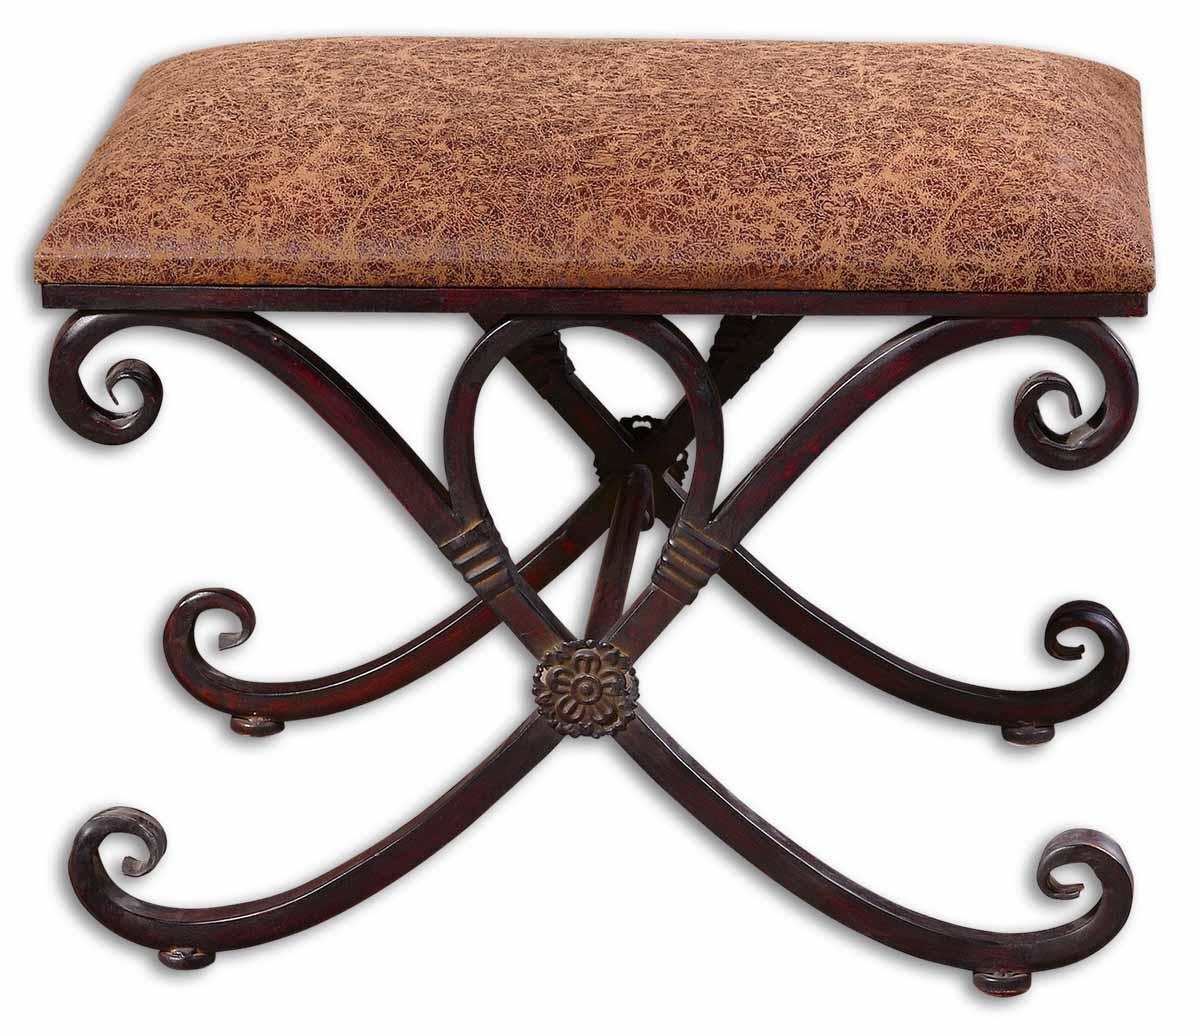 Uttermost Accent Furniture Manoj Small Bench - Item Number: 26122